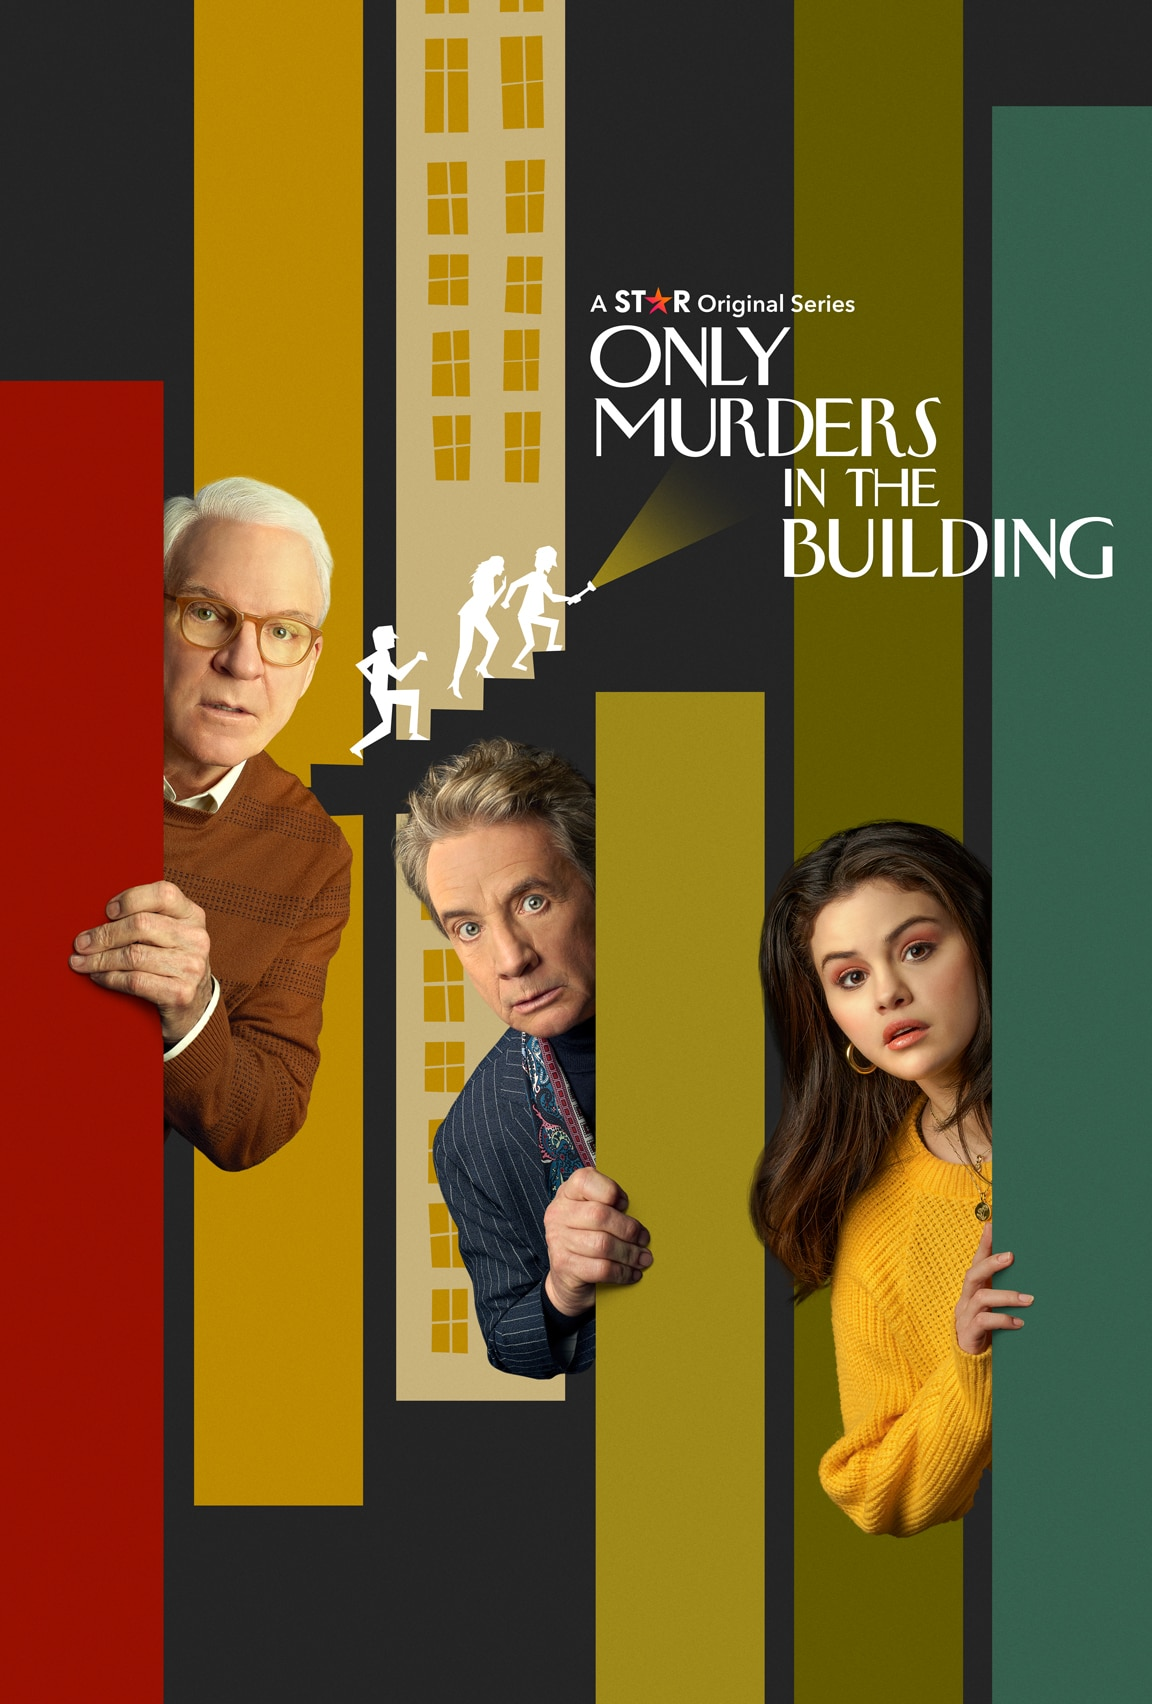 Only Murders in the Building on Star on Disney Plus